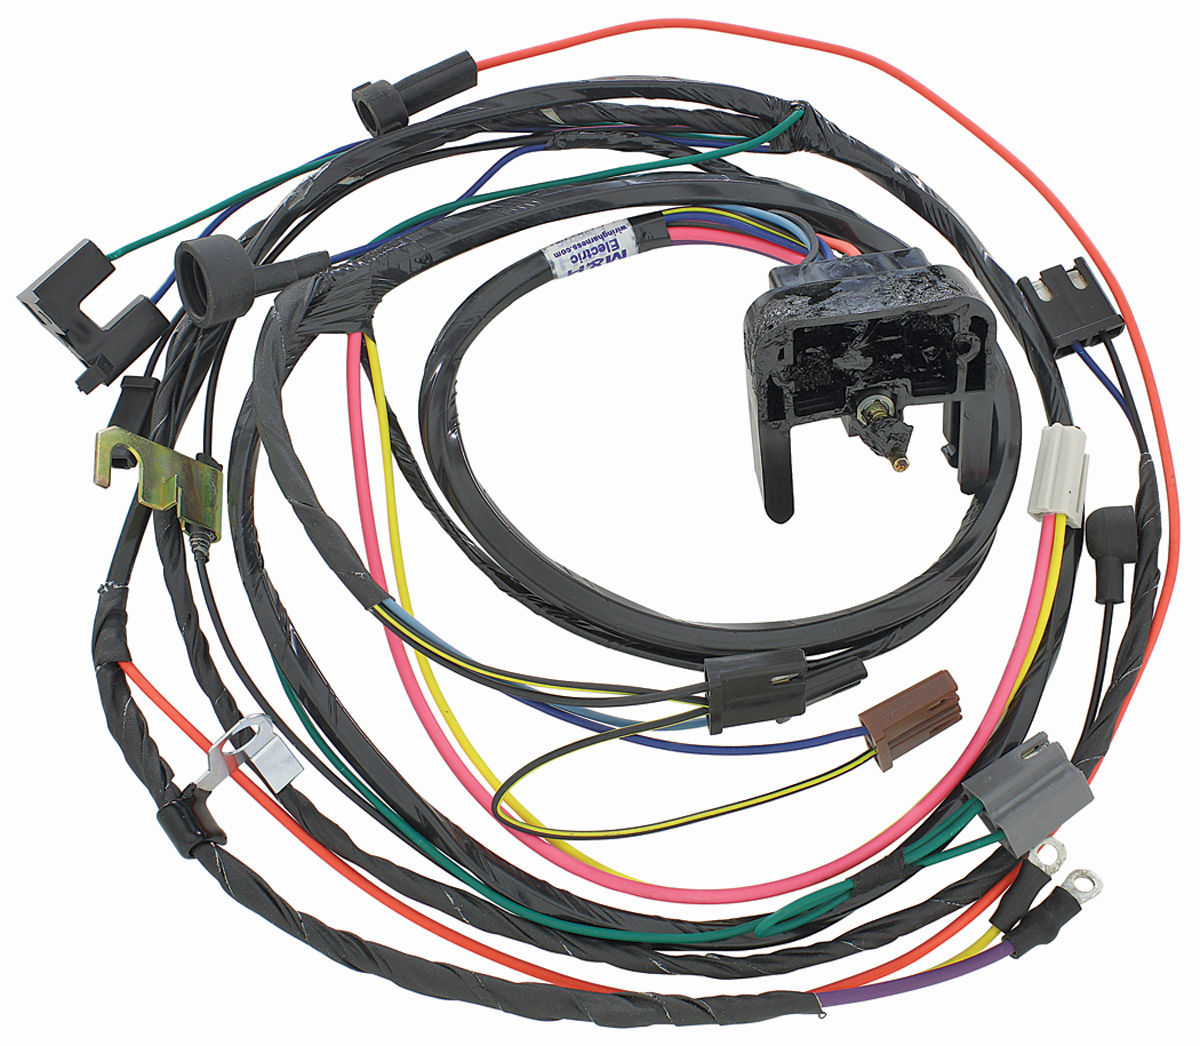 m amp h engine harness 396 454 hei w manual trans fits 1970 1970 nova wiring diagram colored 1970 nova wiring